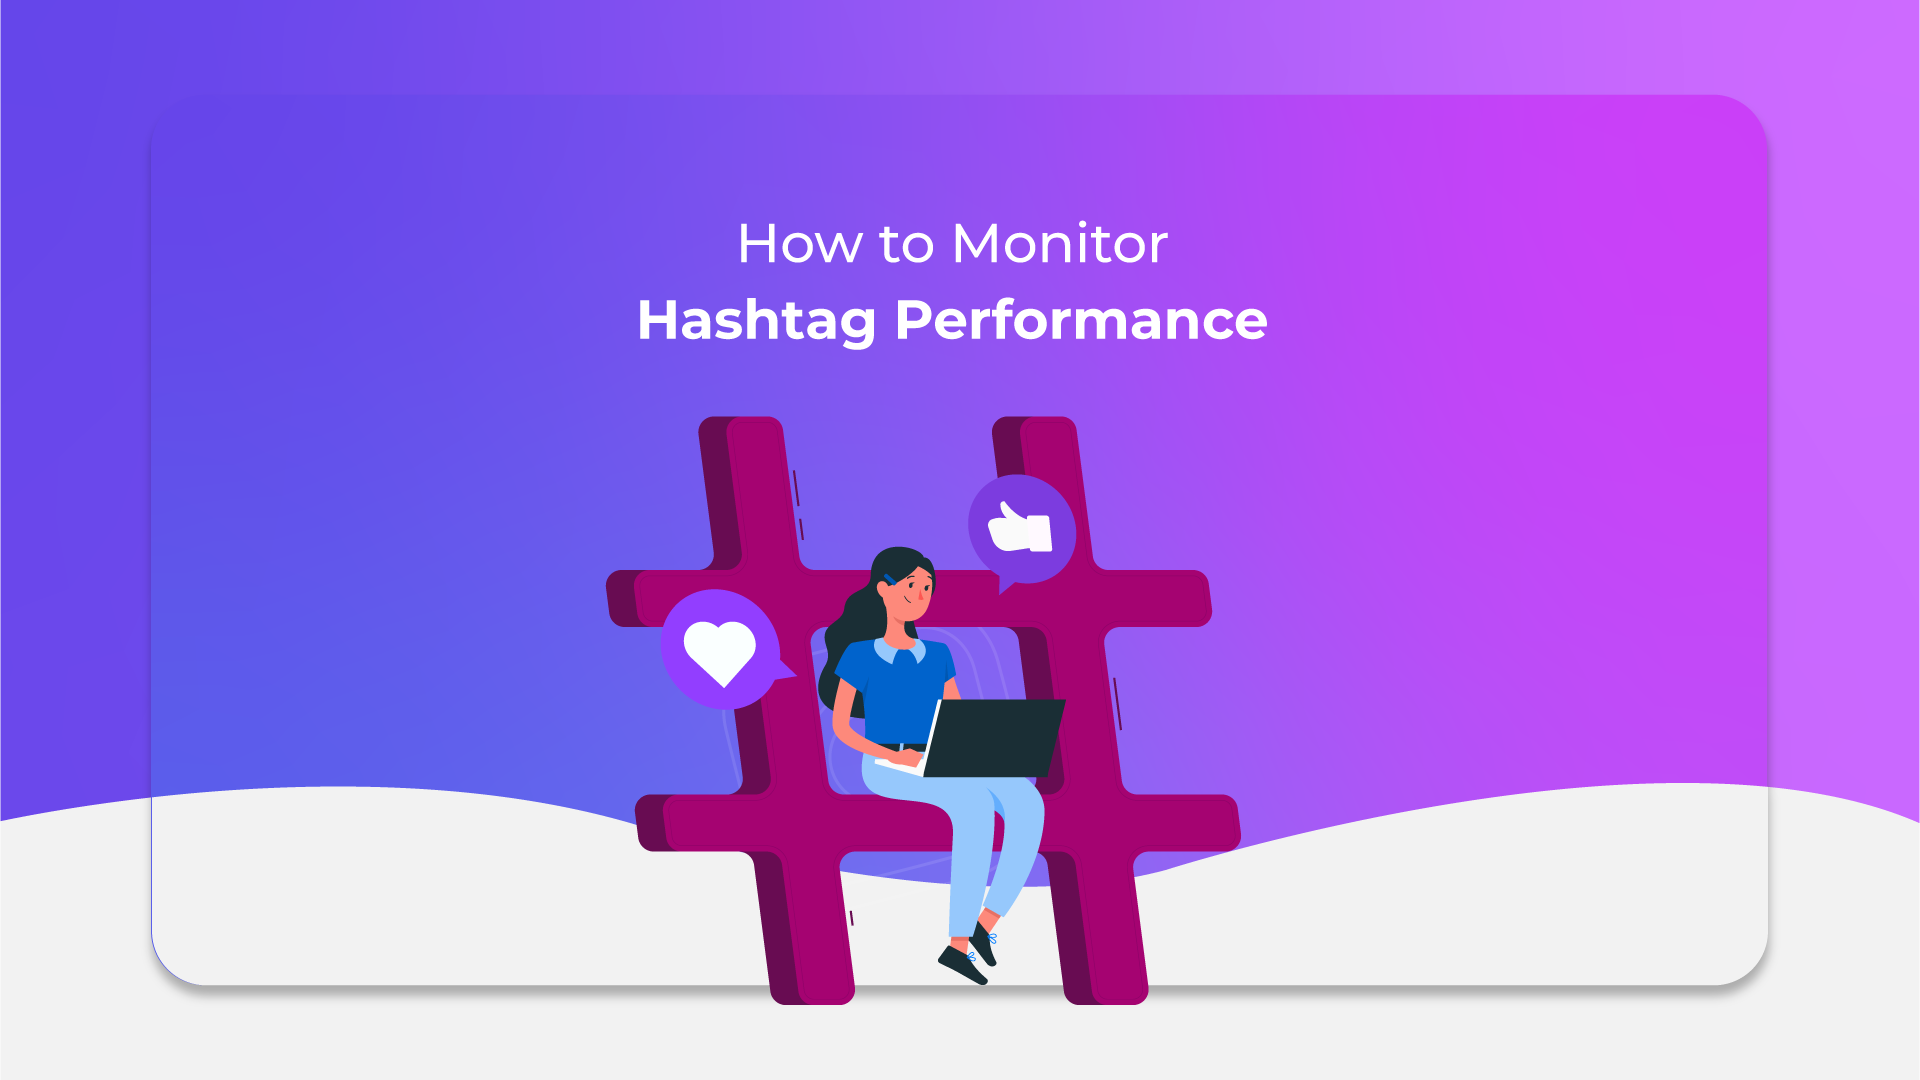 How to Monitor Hashtag Performance